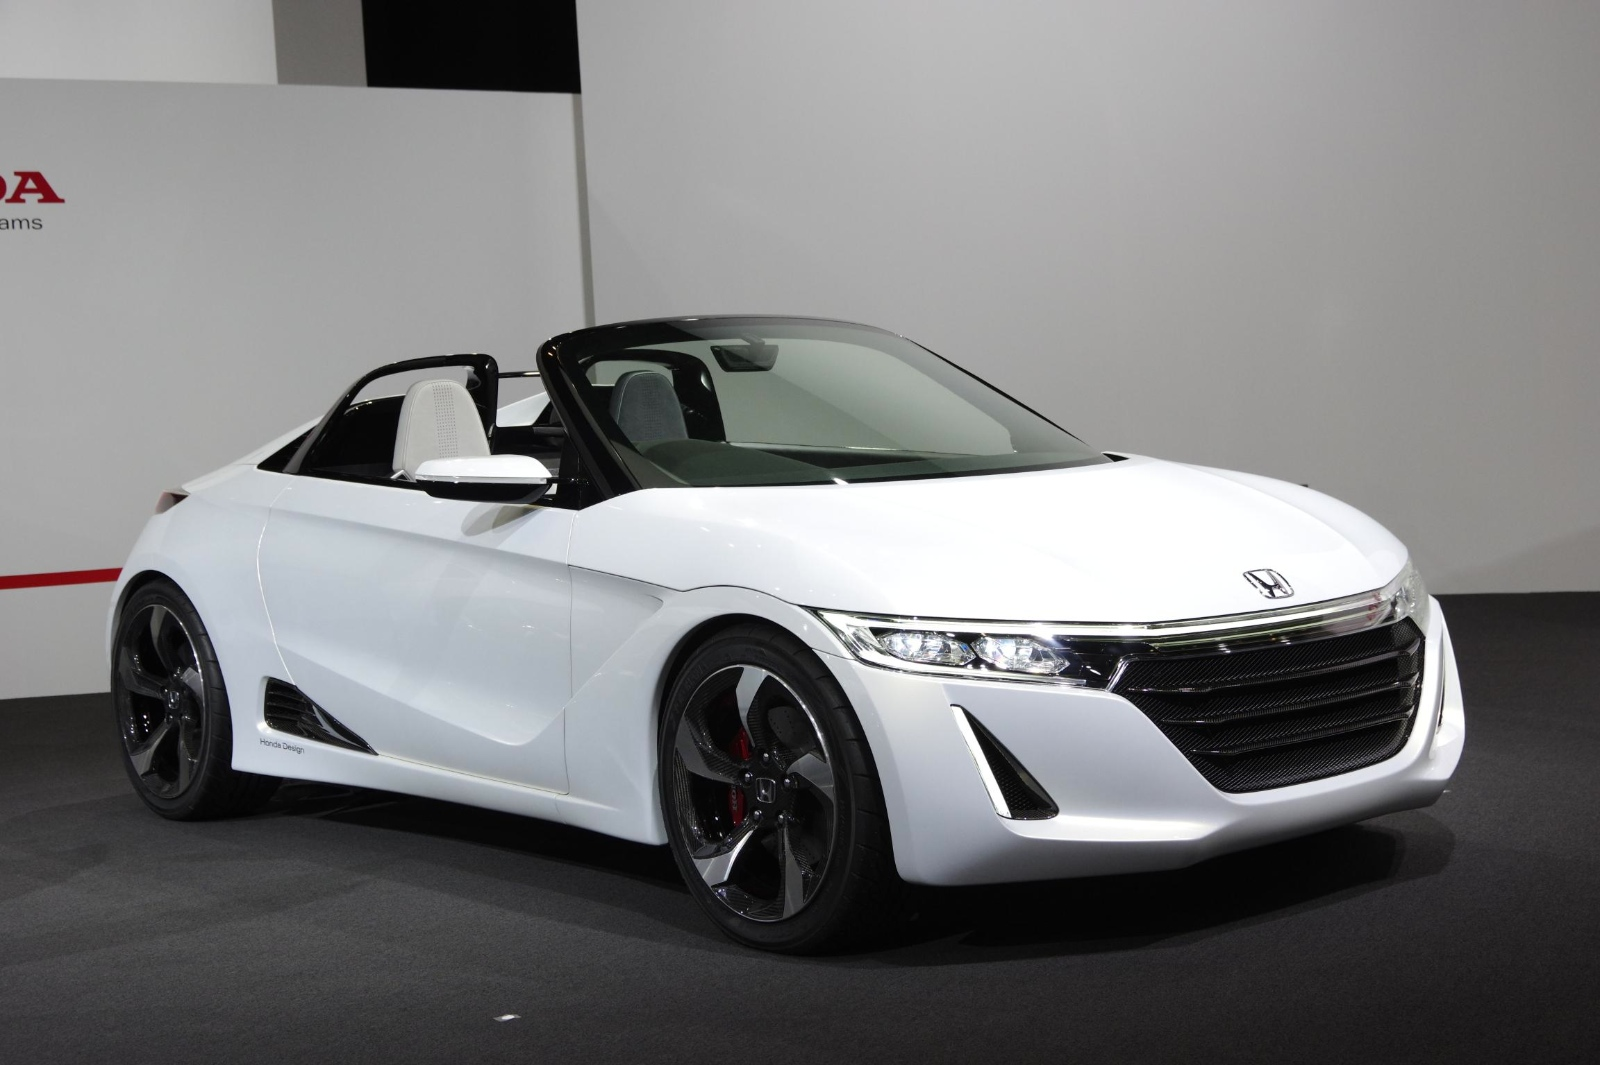 shrunken-nsx-honda-s660-kei-sportscar-coming-in-2015_2